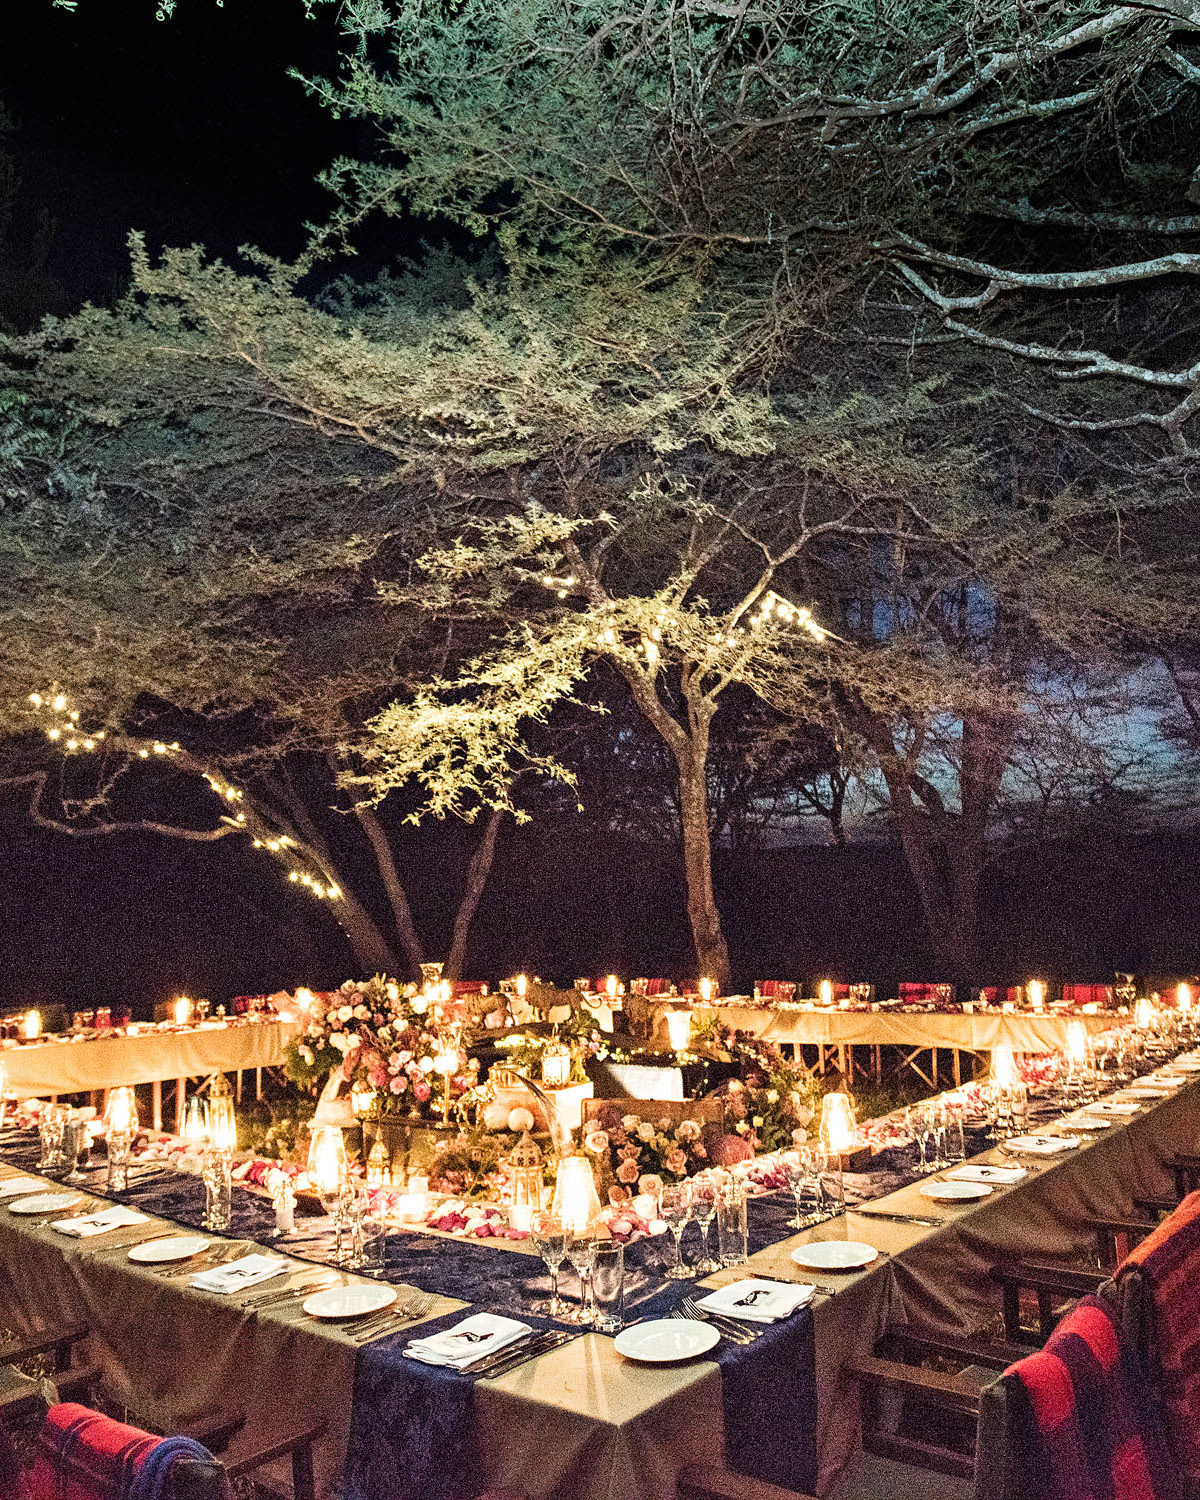 grant lance wedding africa reception table